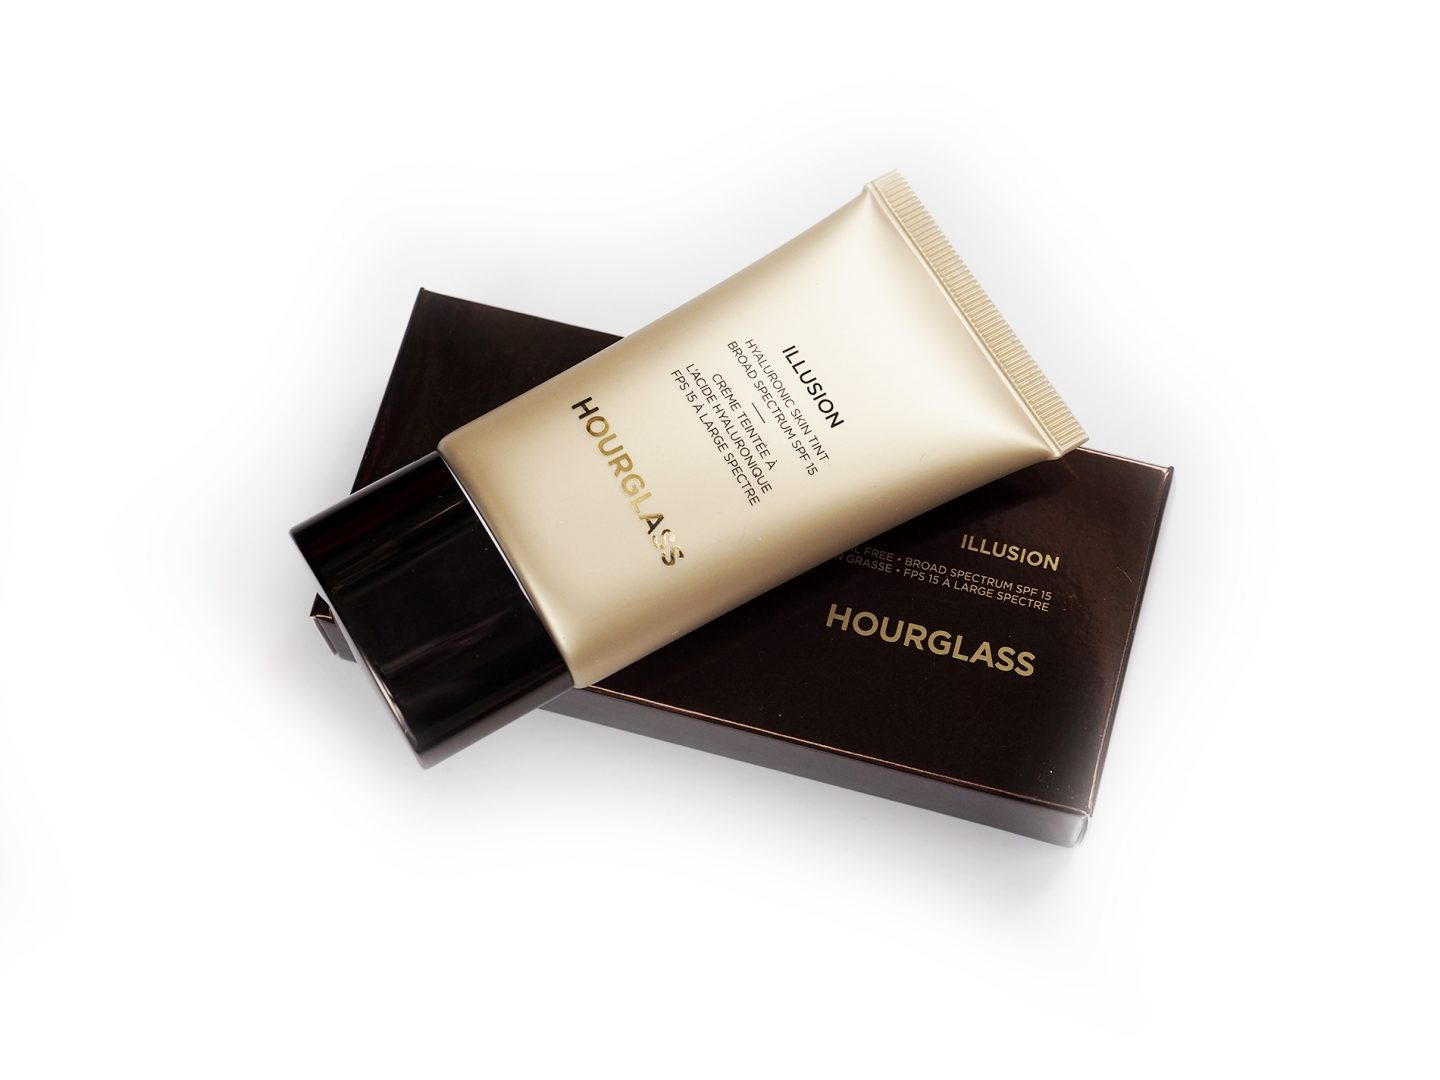 Hourglass Illusion Hyaluronic Skin Tint - Shell